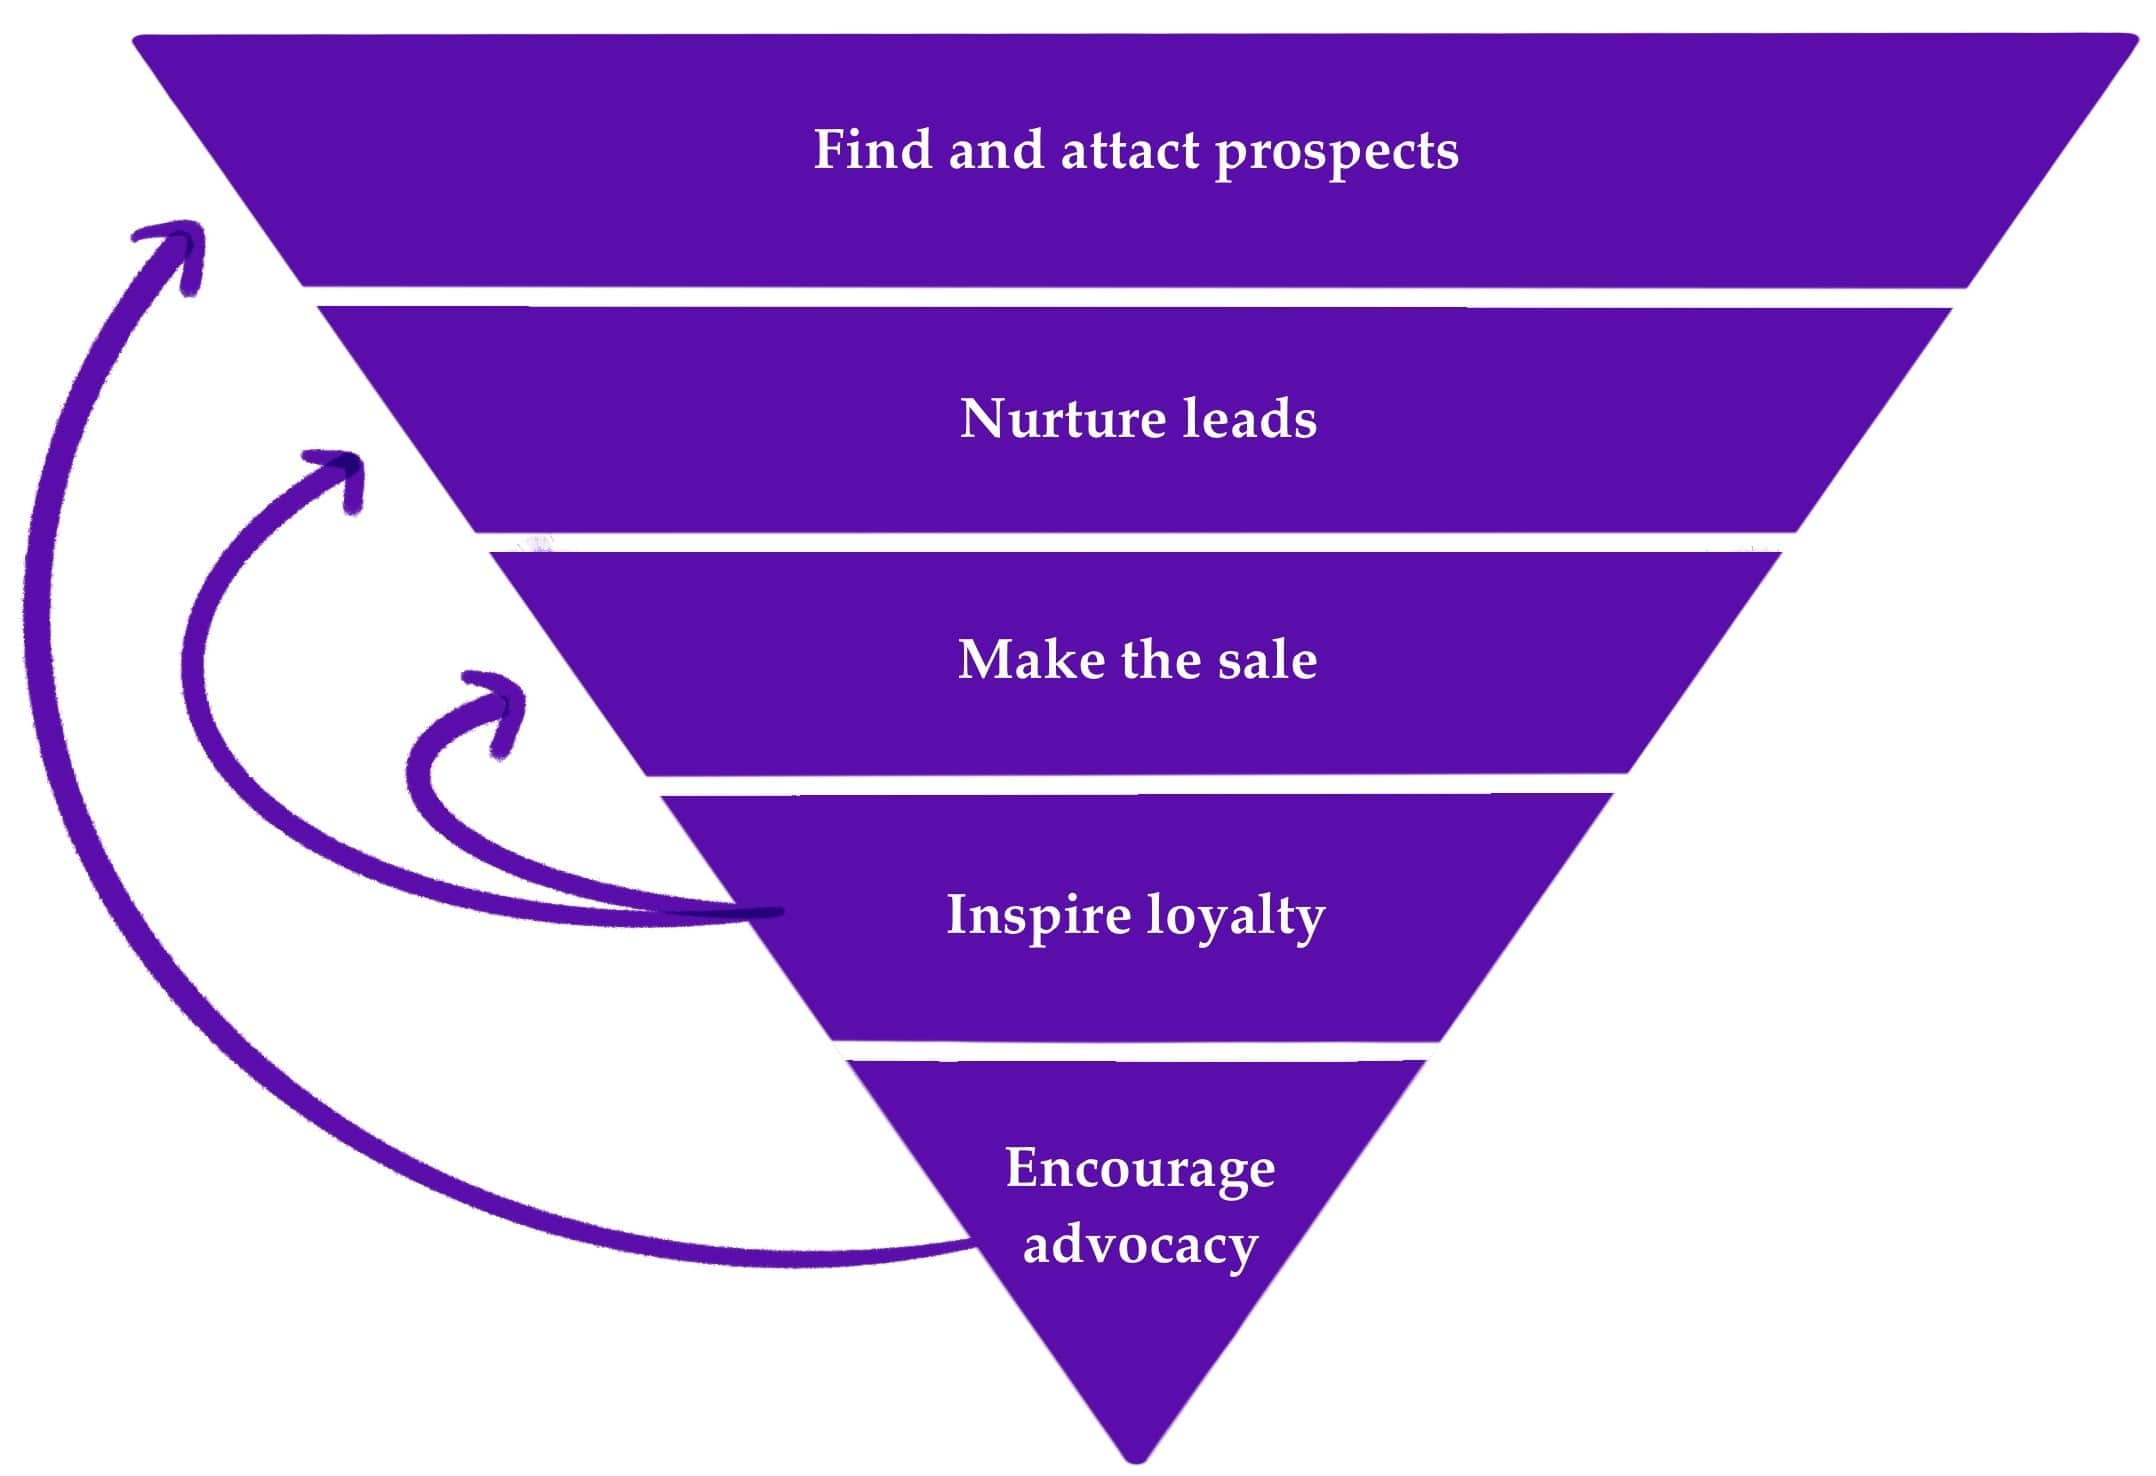 An upside down pyramid showing a basic sales funnel: find and attract prospects; nurture leads; make the sale; inspire loyalty; encourage advocacy. Then the loyalty section has an arrow to make the sale ad nurture leads and the advocacy section has an arrow to find and attract prospects